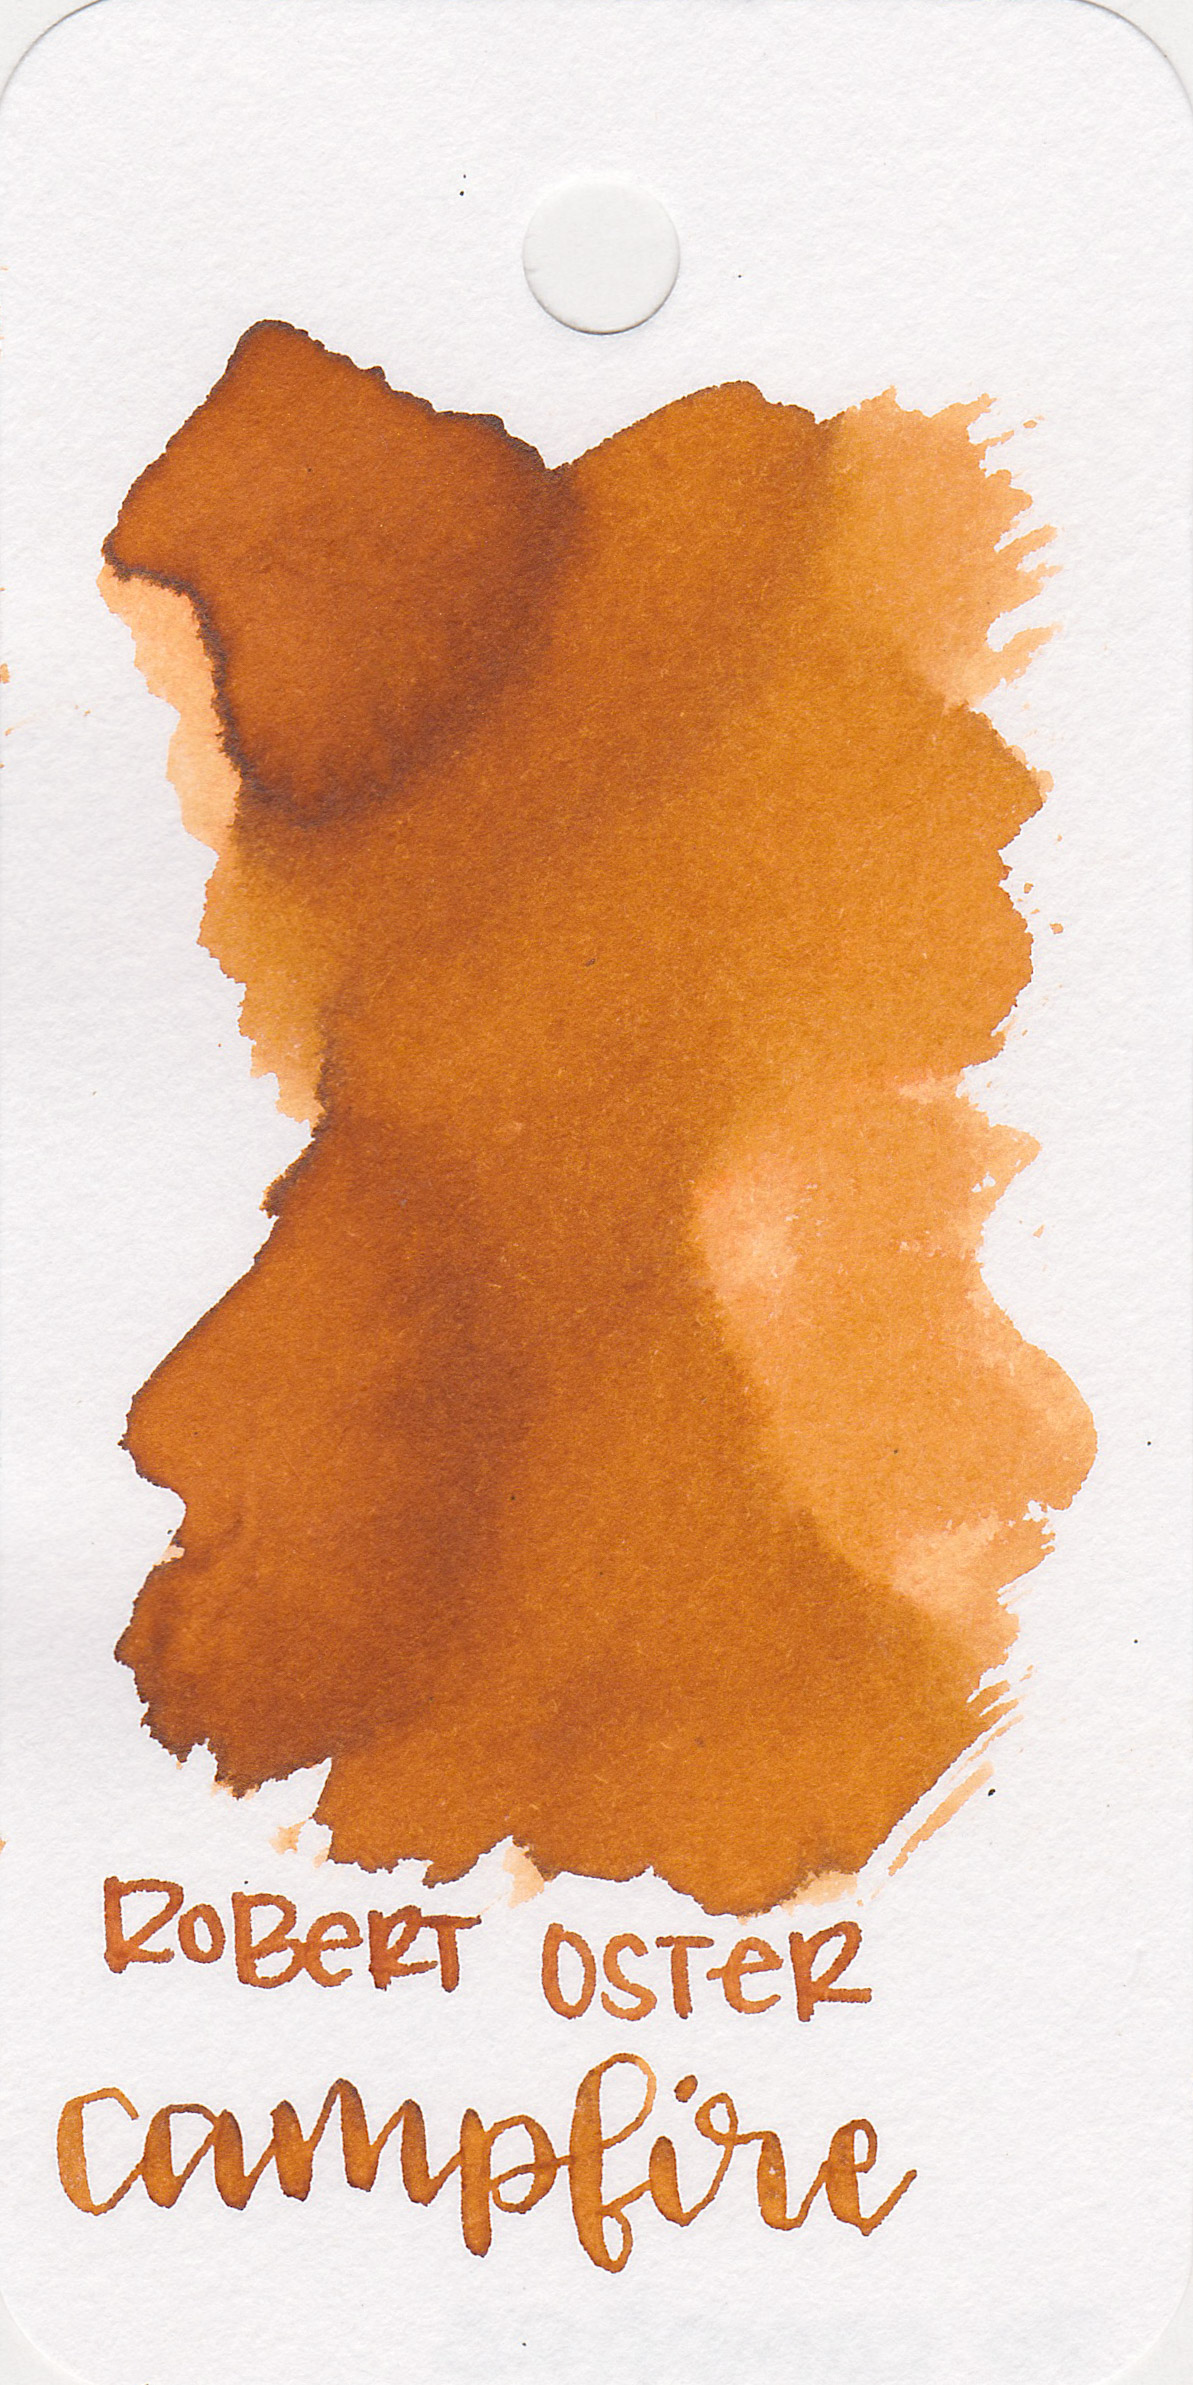 The color: - Campfire is a medium orange-brown. I compared it to oranges and browns, and decided it's a bit more brown than orange.